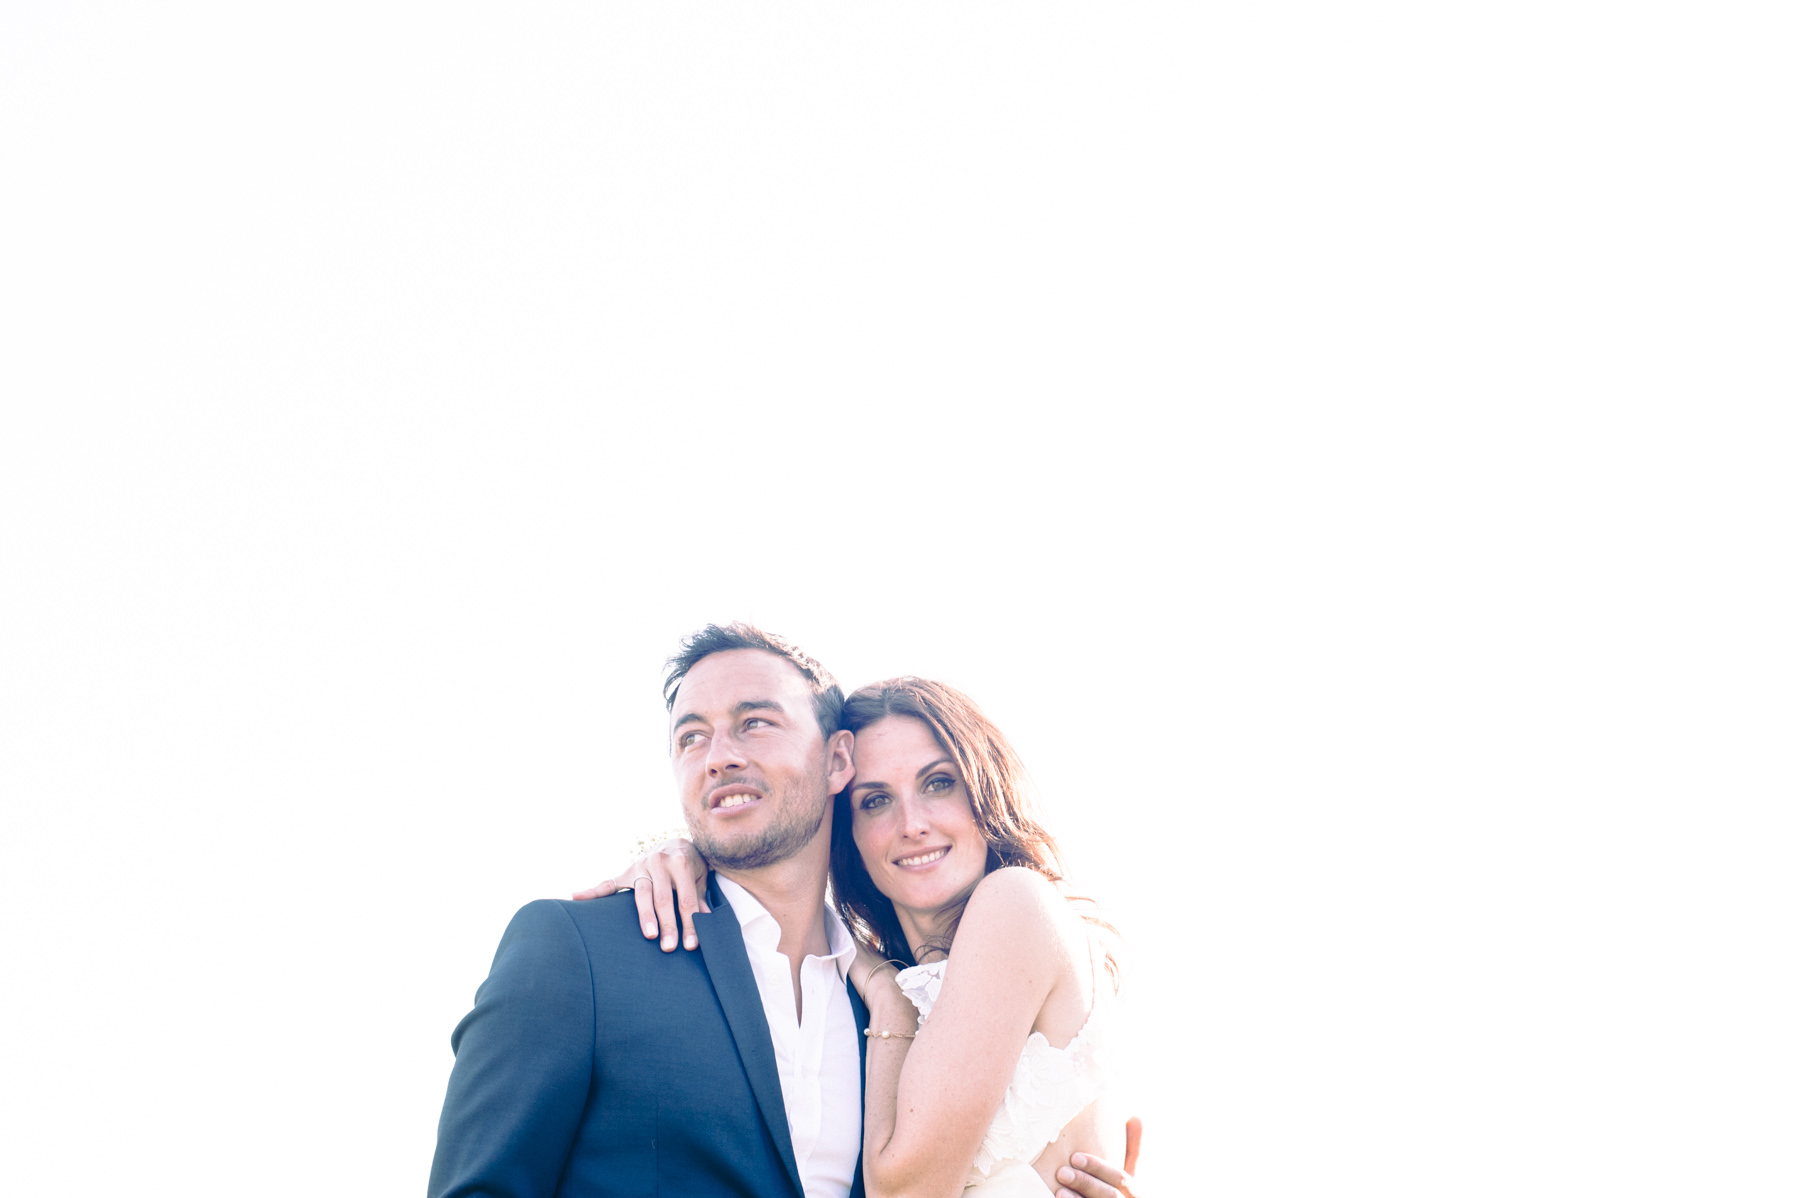 Photographe mariage montpellier corse - Mademoiselle G photographie (152)